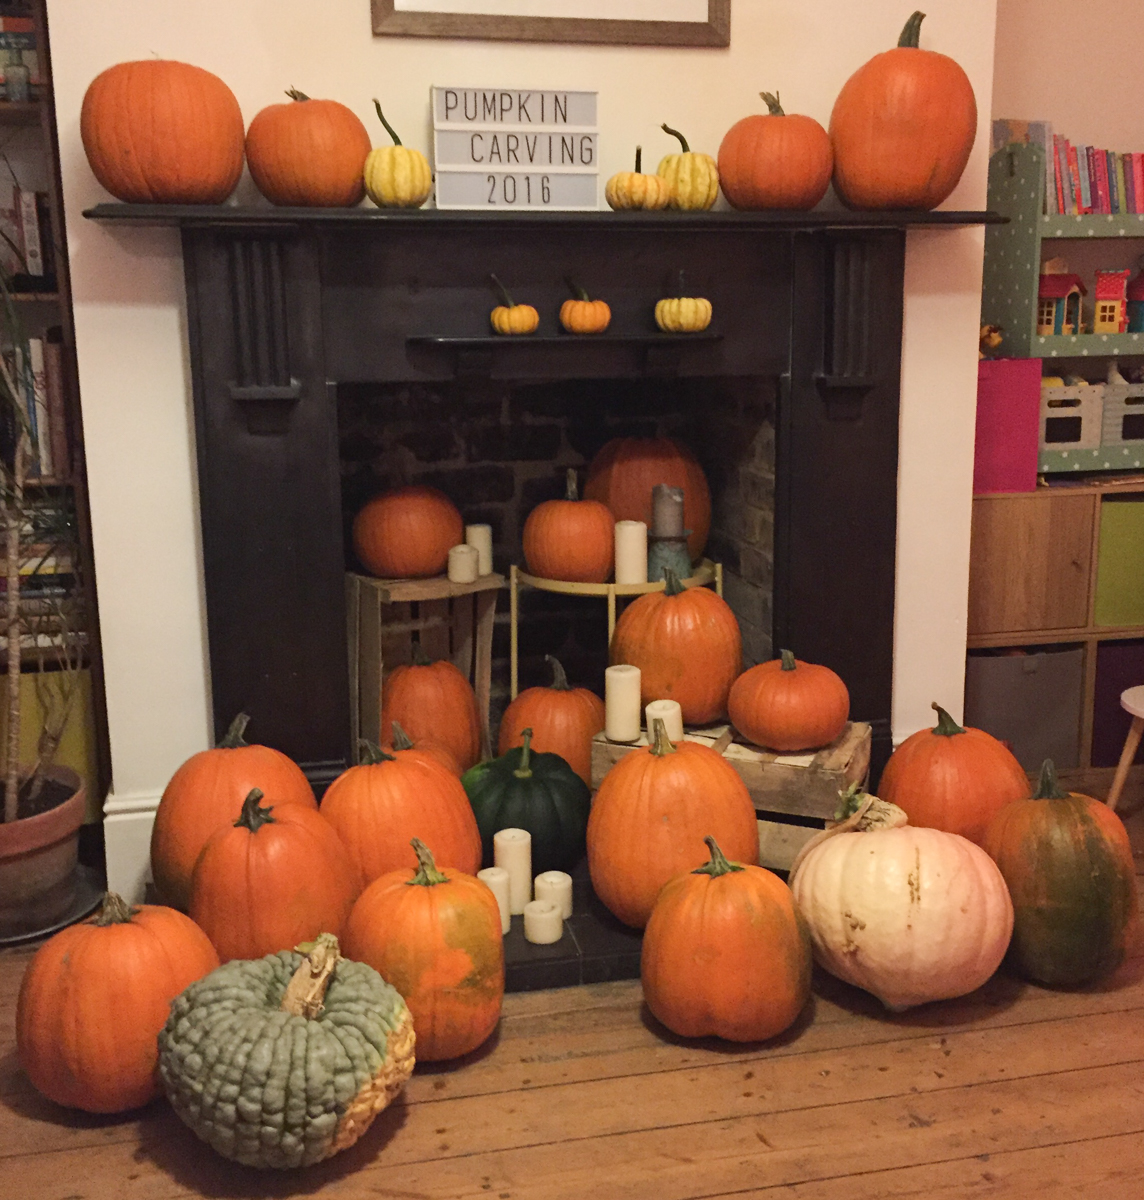 UK pumpkin carving workshop